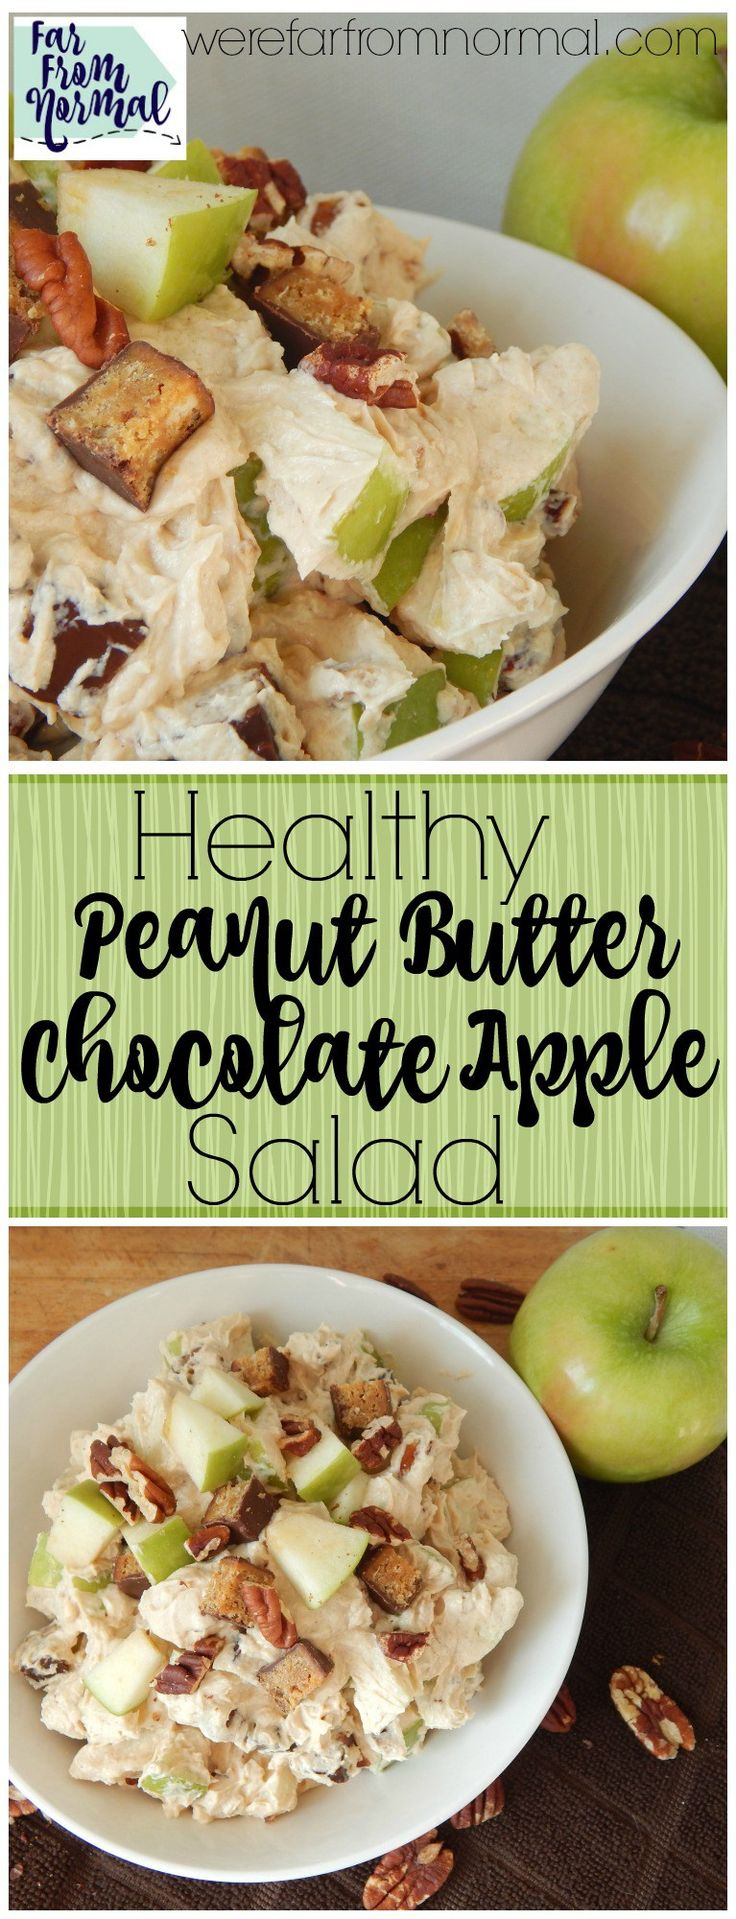 This salad is incredible!! It's so delicious, rich, creamy, and crunchy, you'll never guess that it's healthy! Made with greek yogurt and protein bars it's as healthy as it is delicious!